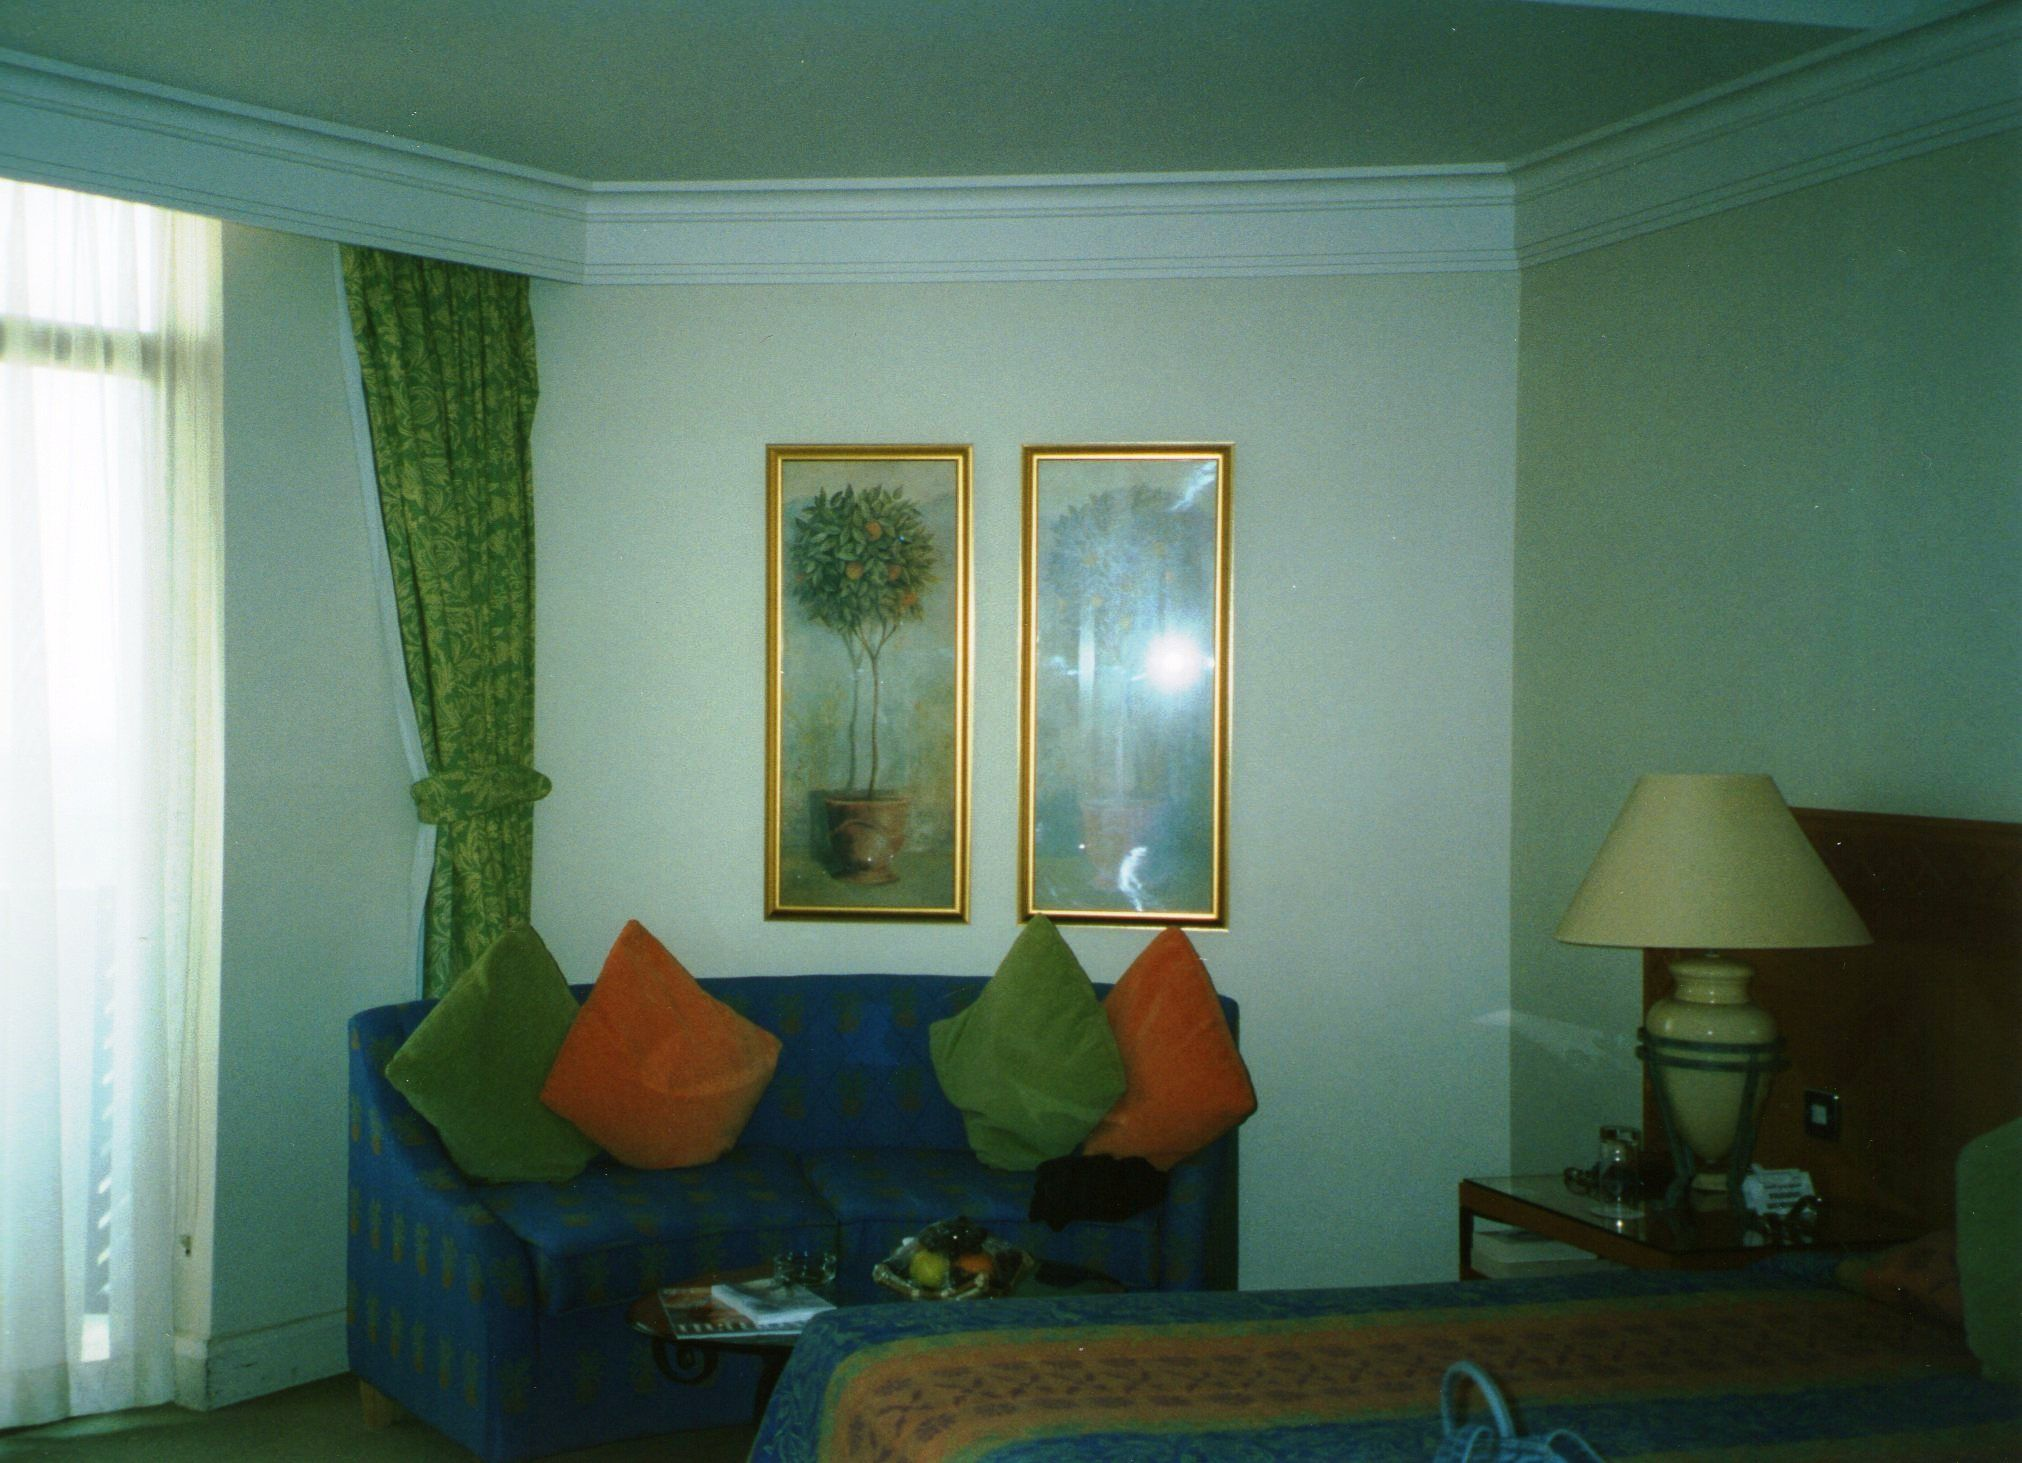 #tbt A room in our #JAjebelalibeachhotel in 2002 (photo courtesy of Deborah & Steve Hutton) - they look a little different now... :-)